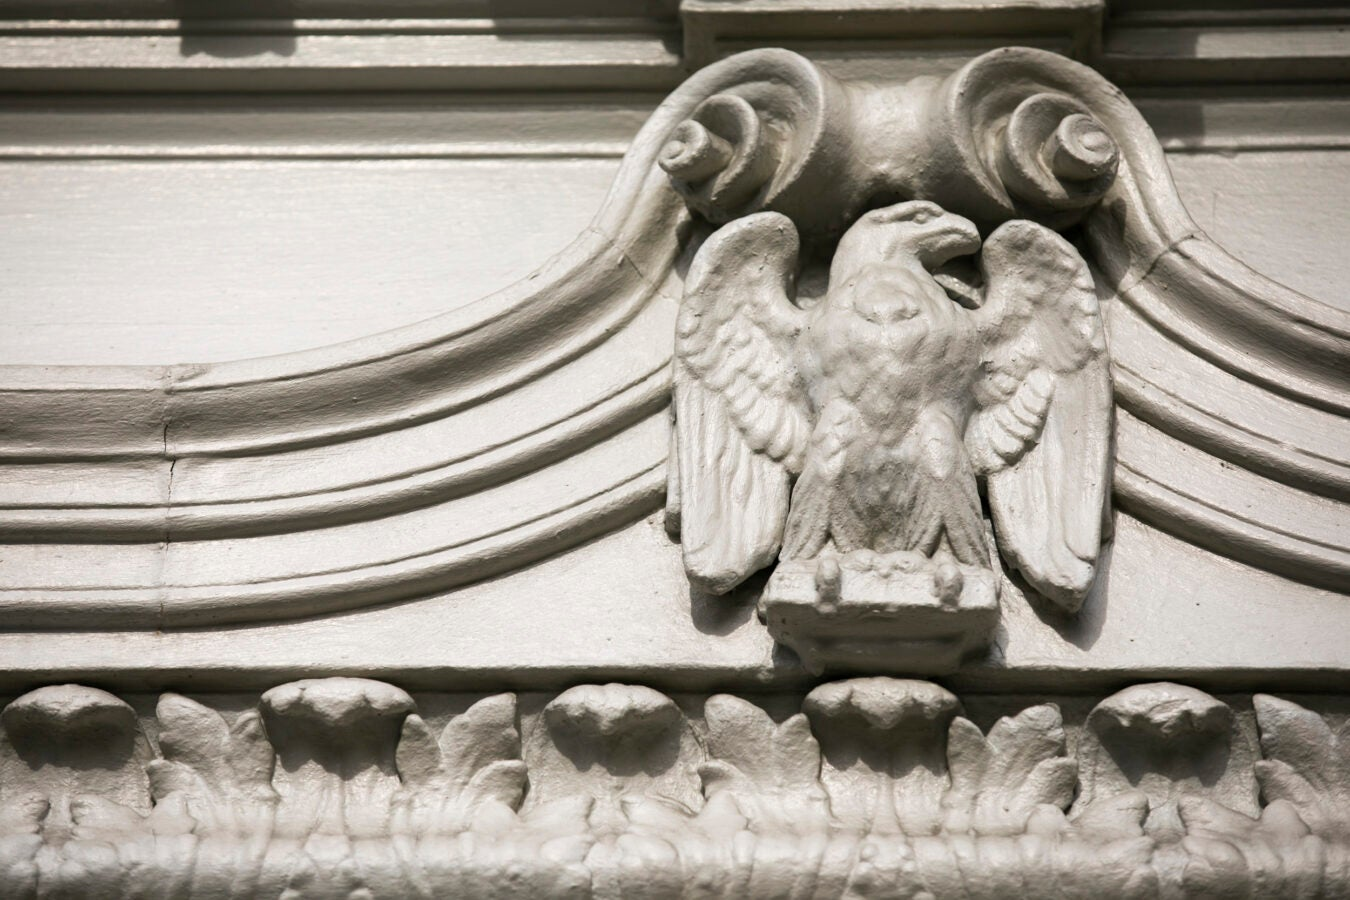 An eagle decorates the exterior of Leverett House.